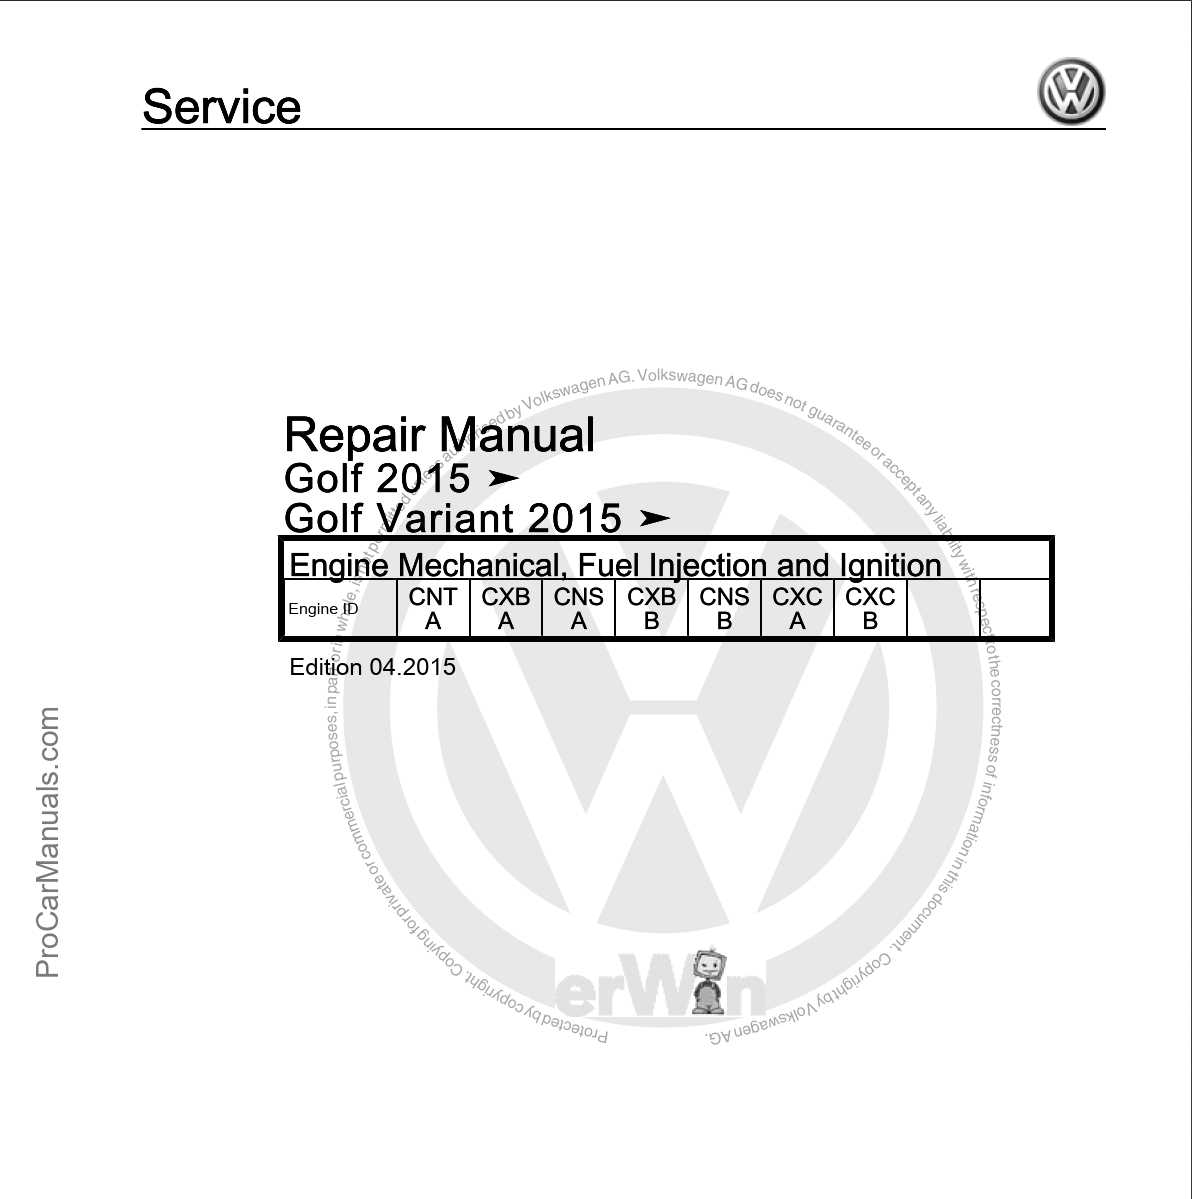 VW Golf 2015, Golf Variant 2015 Repair Manual